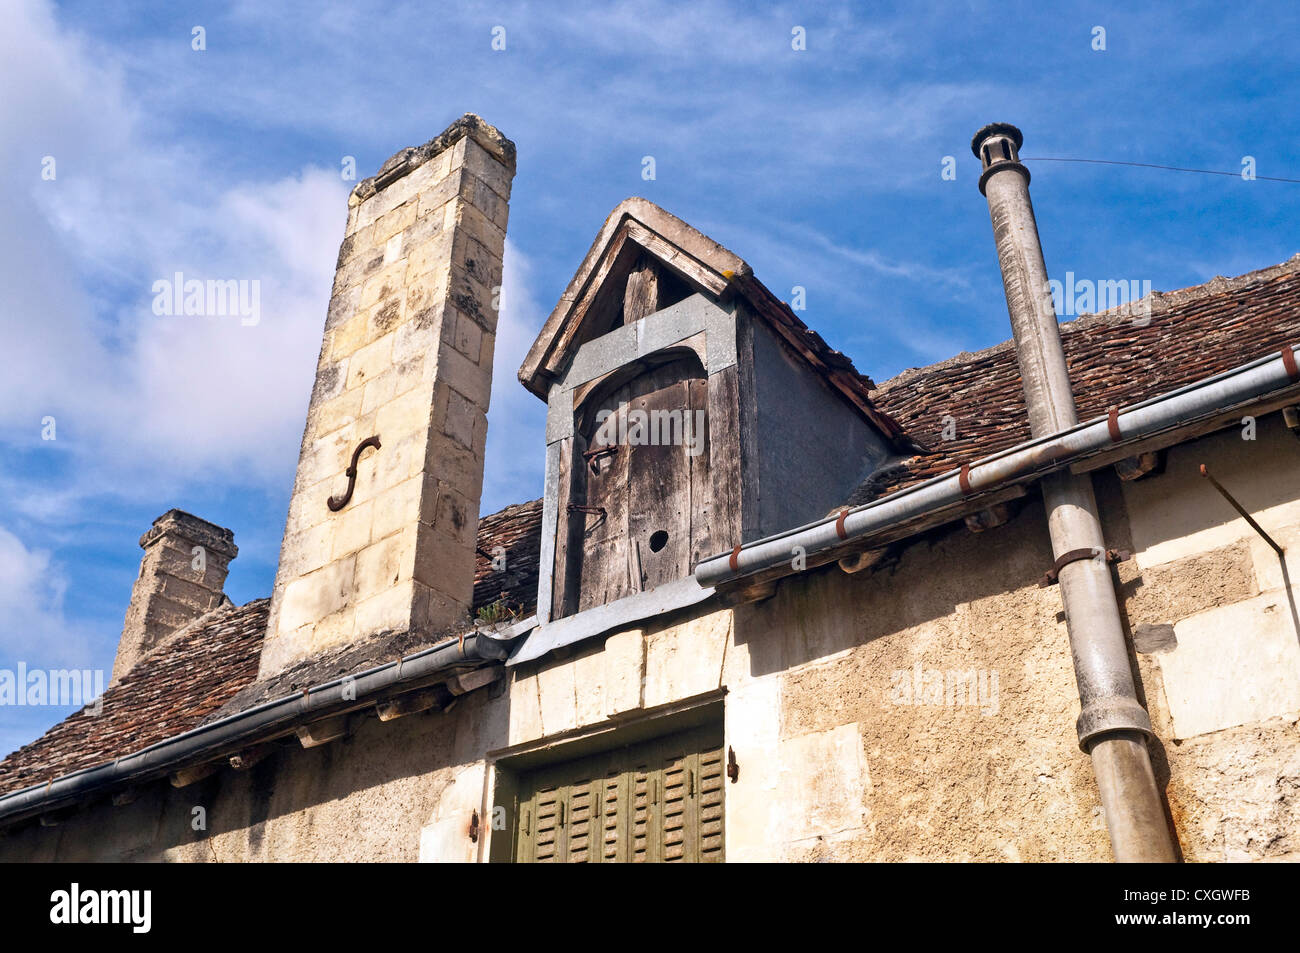 Village house gable, chimney and roof details - France. - Stock Image